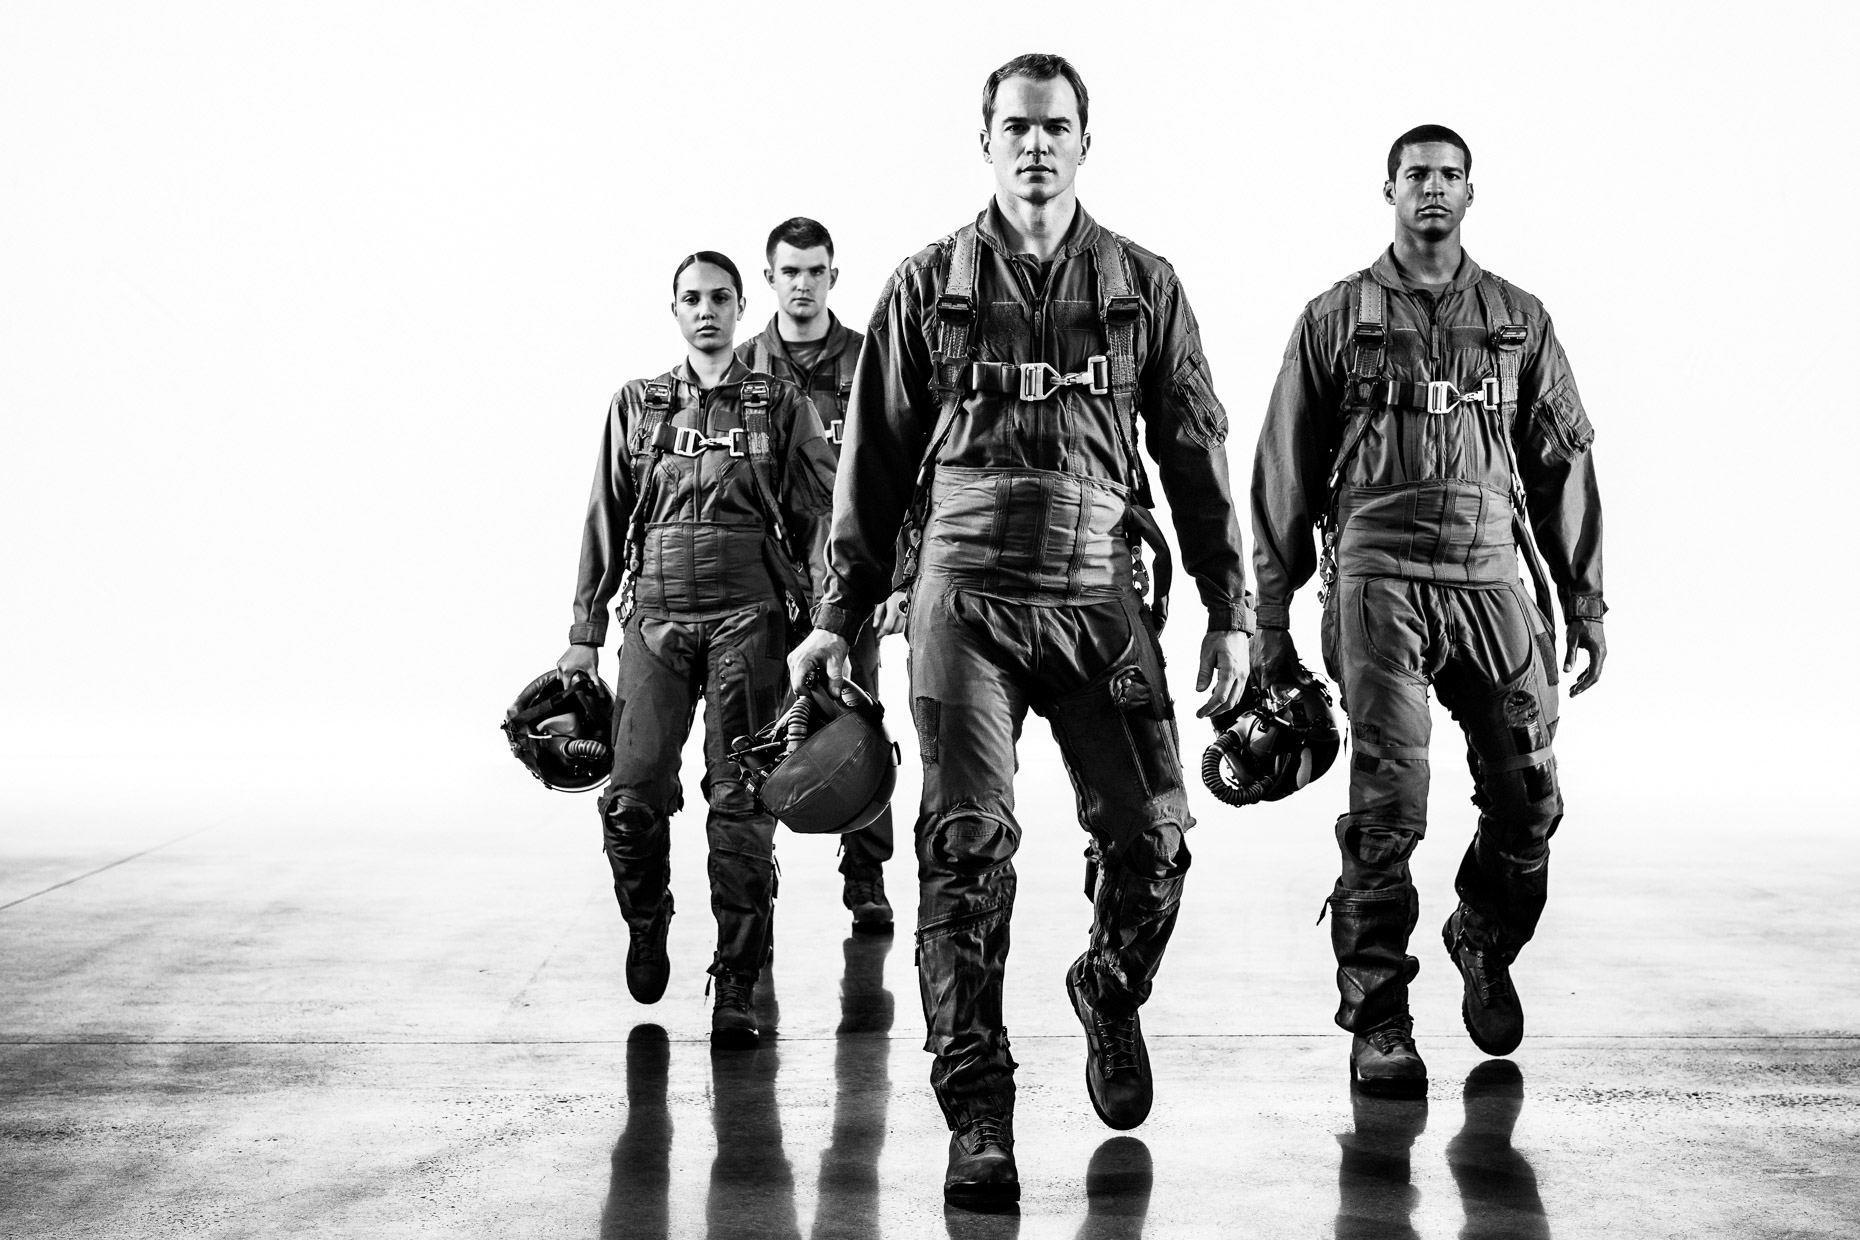 Fighter pilot-training for Northrop Grumman military portraits with Chris Ryan, Austin Michael Young, and Hadasa Isolino. Inspired by The Right Stuff - by Andy Batt